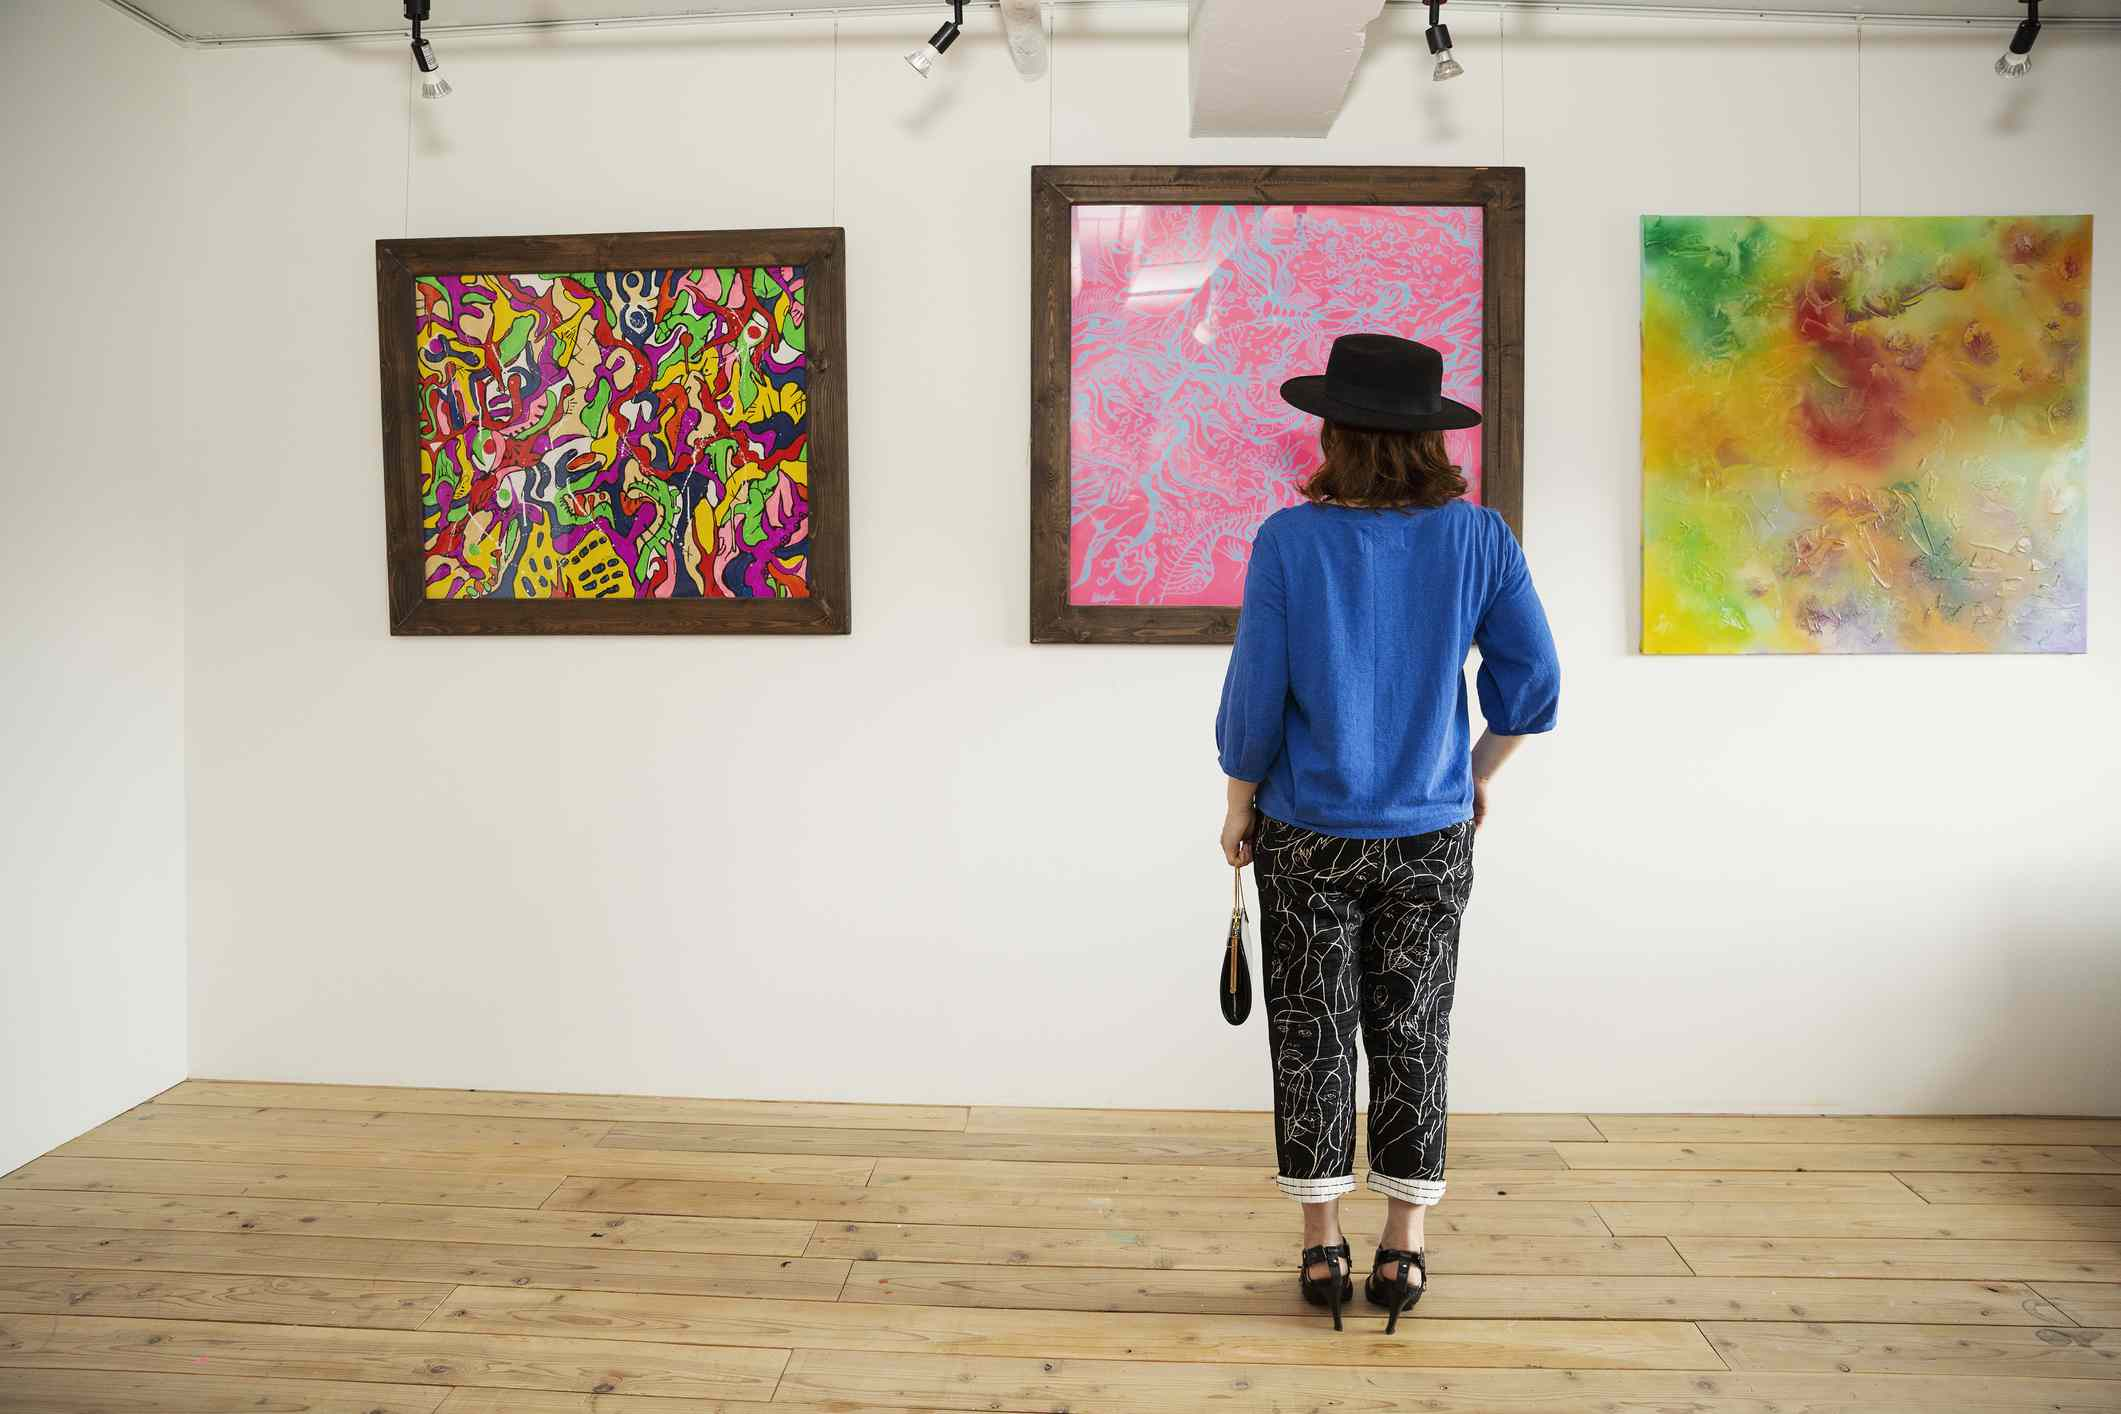 Woman stands in front of abstract paintings in art gallery